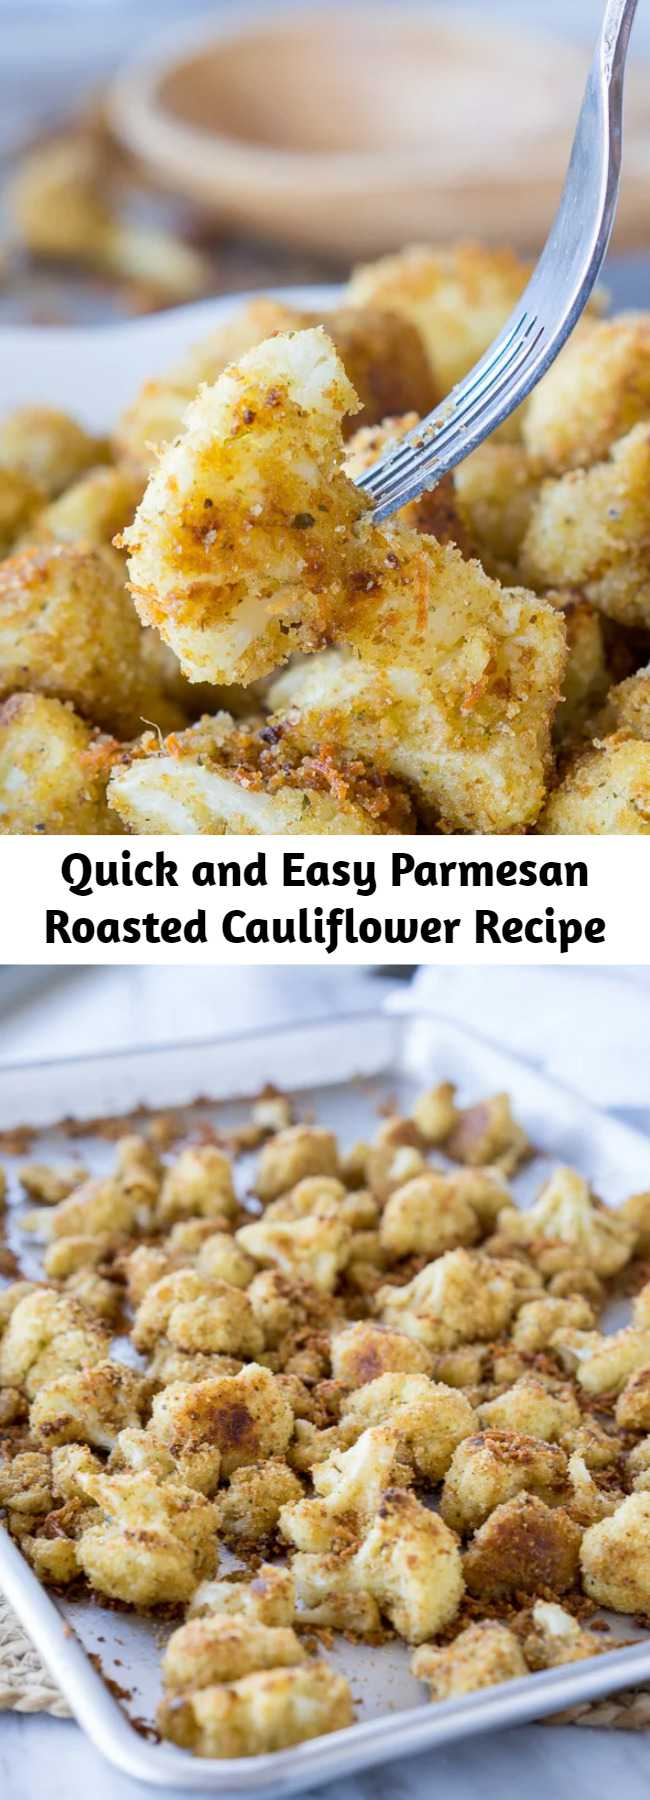 Quick and Easy Parmesan Roasted Cauliflower Recipe - These Parmesan Roasted Cauliflower Bites are the perfect quick and easy side dish, or double as a vegetarian baked chicken nugget!